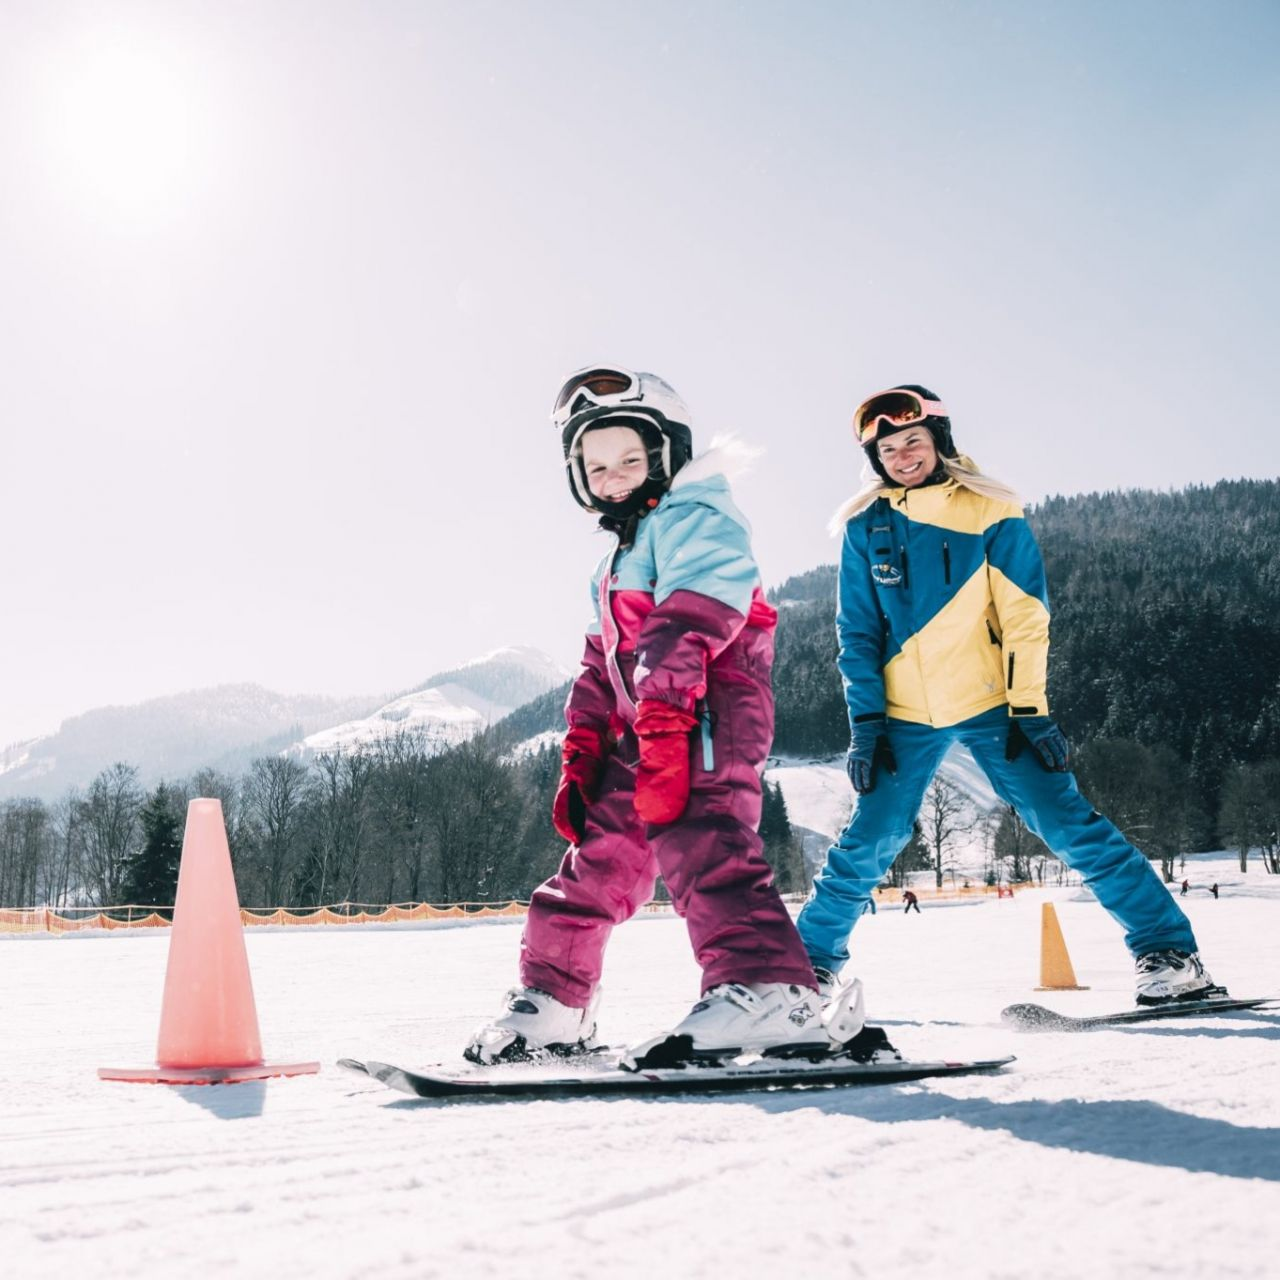 SKI MUNCHKIN DAYS SPECIAL IN JANUARY